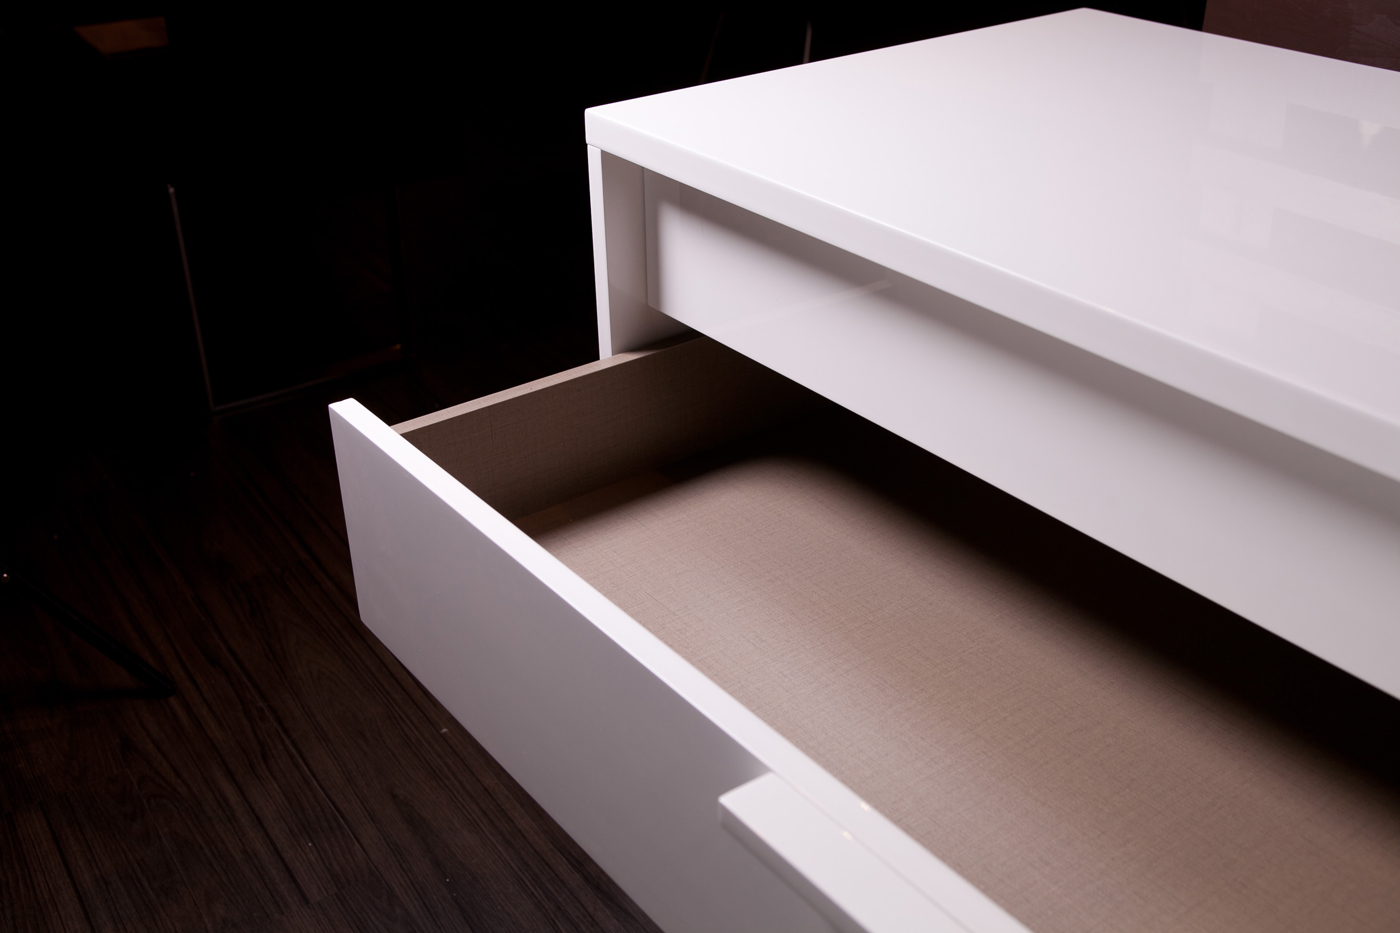 Removing Odors From Dresser Drawers